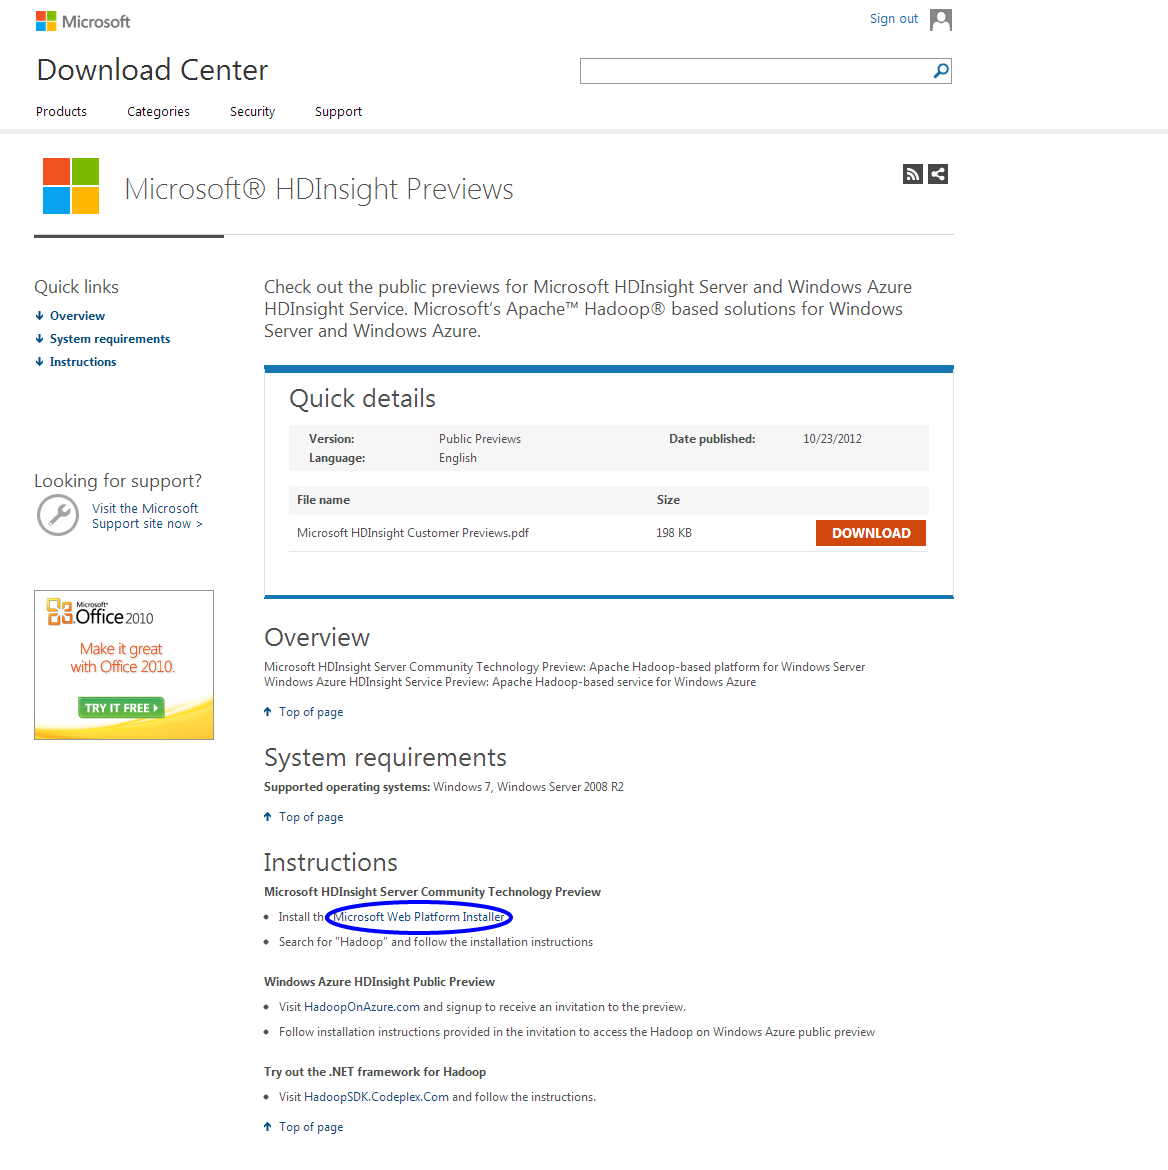 HOW TO INSTALL AND USE MICROSOFT HDINSIGHT (HADOOP ON WINDOWS)